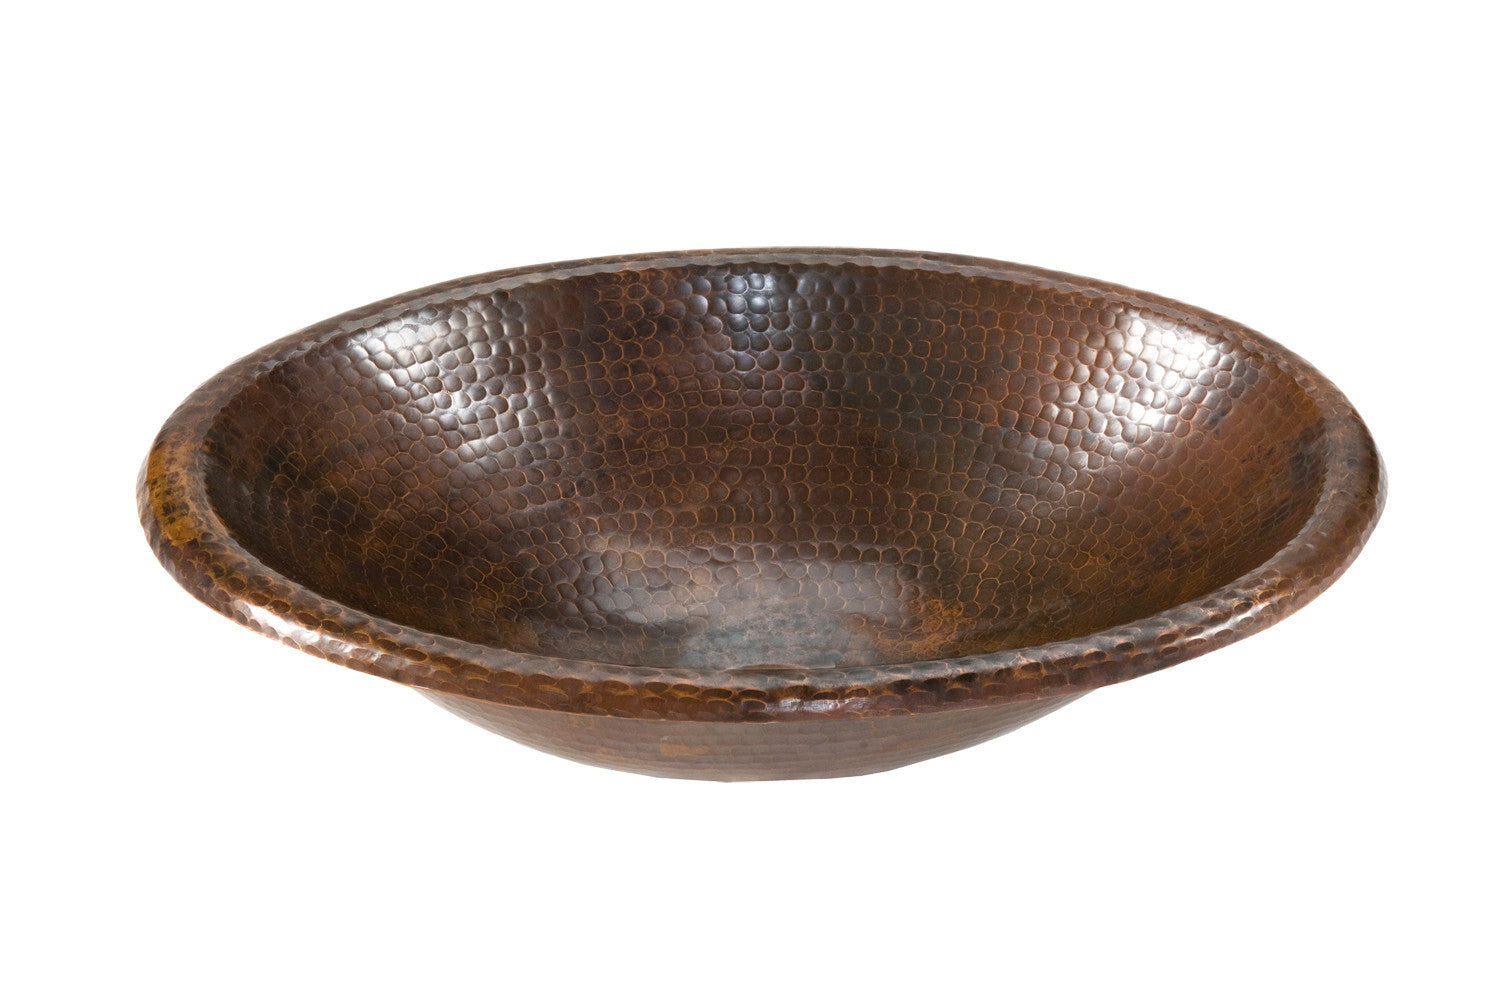 Bathroom Sinks   Small Oval Self Rimming Hammered Copper Sink ...